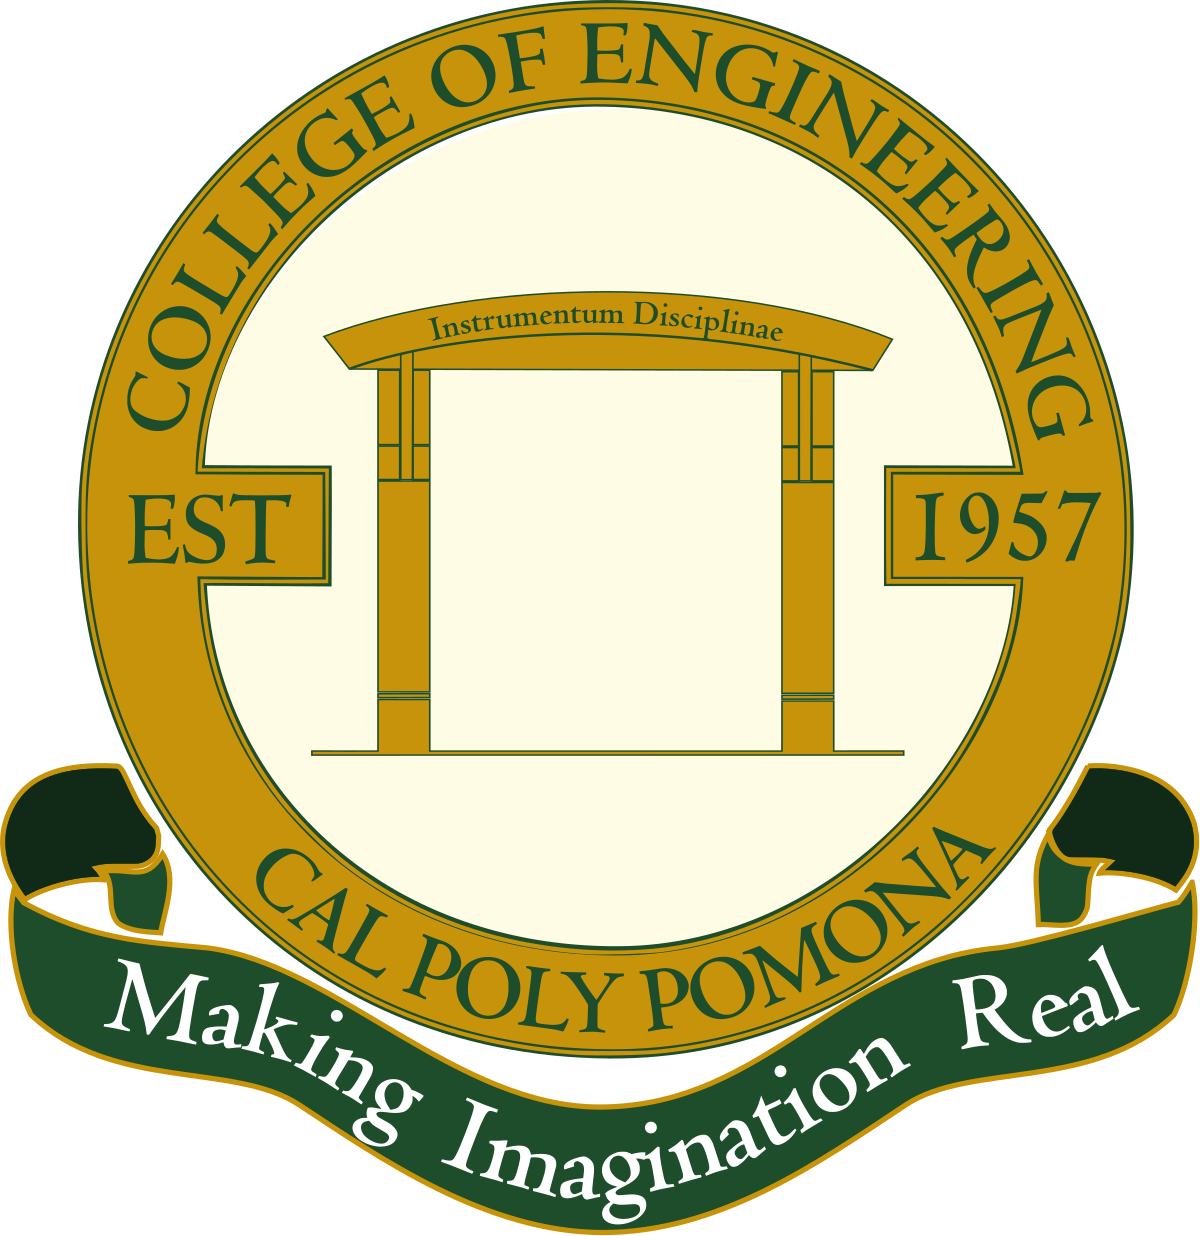 Cal poly pomona college. Engineer clipart agricultural engineering